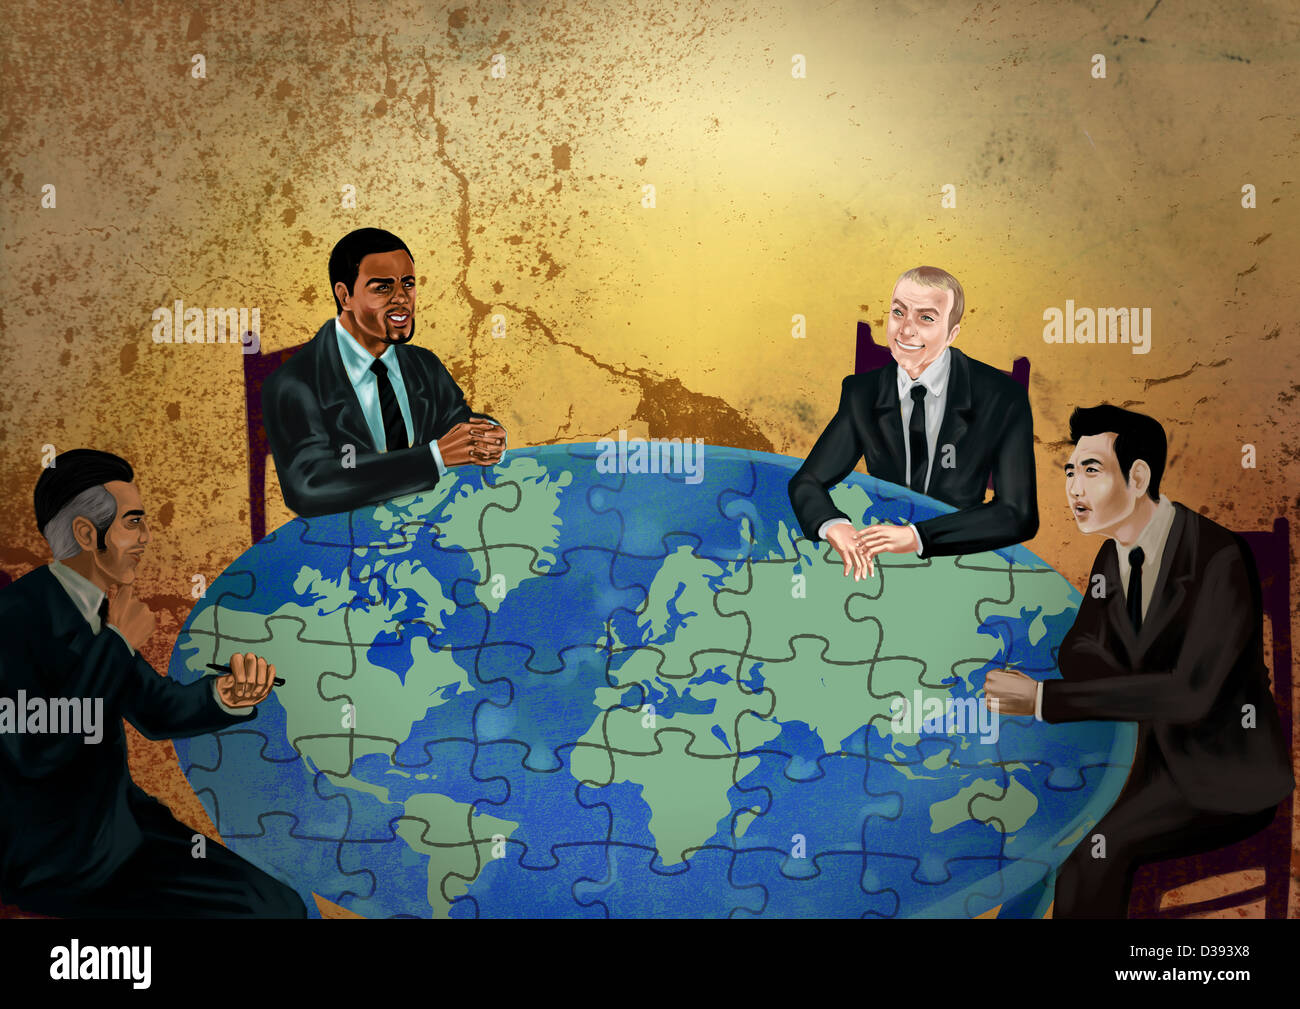 Businessmen discussing on global business - Stock Image